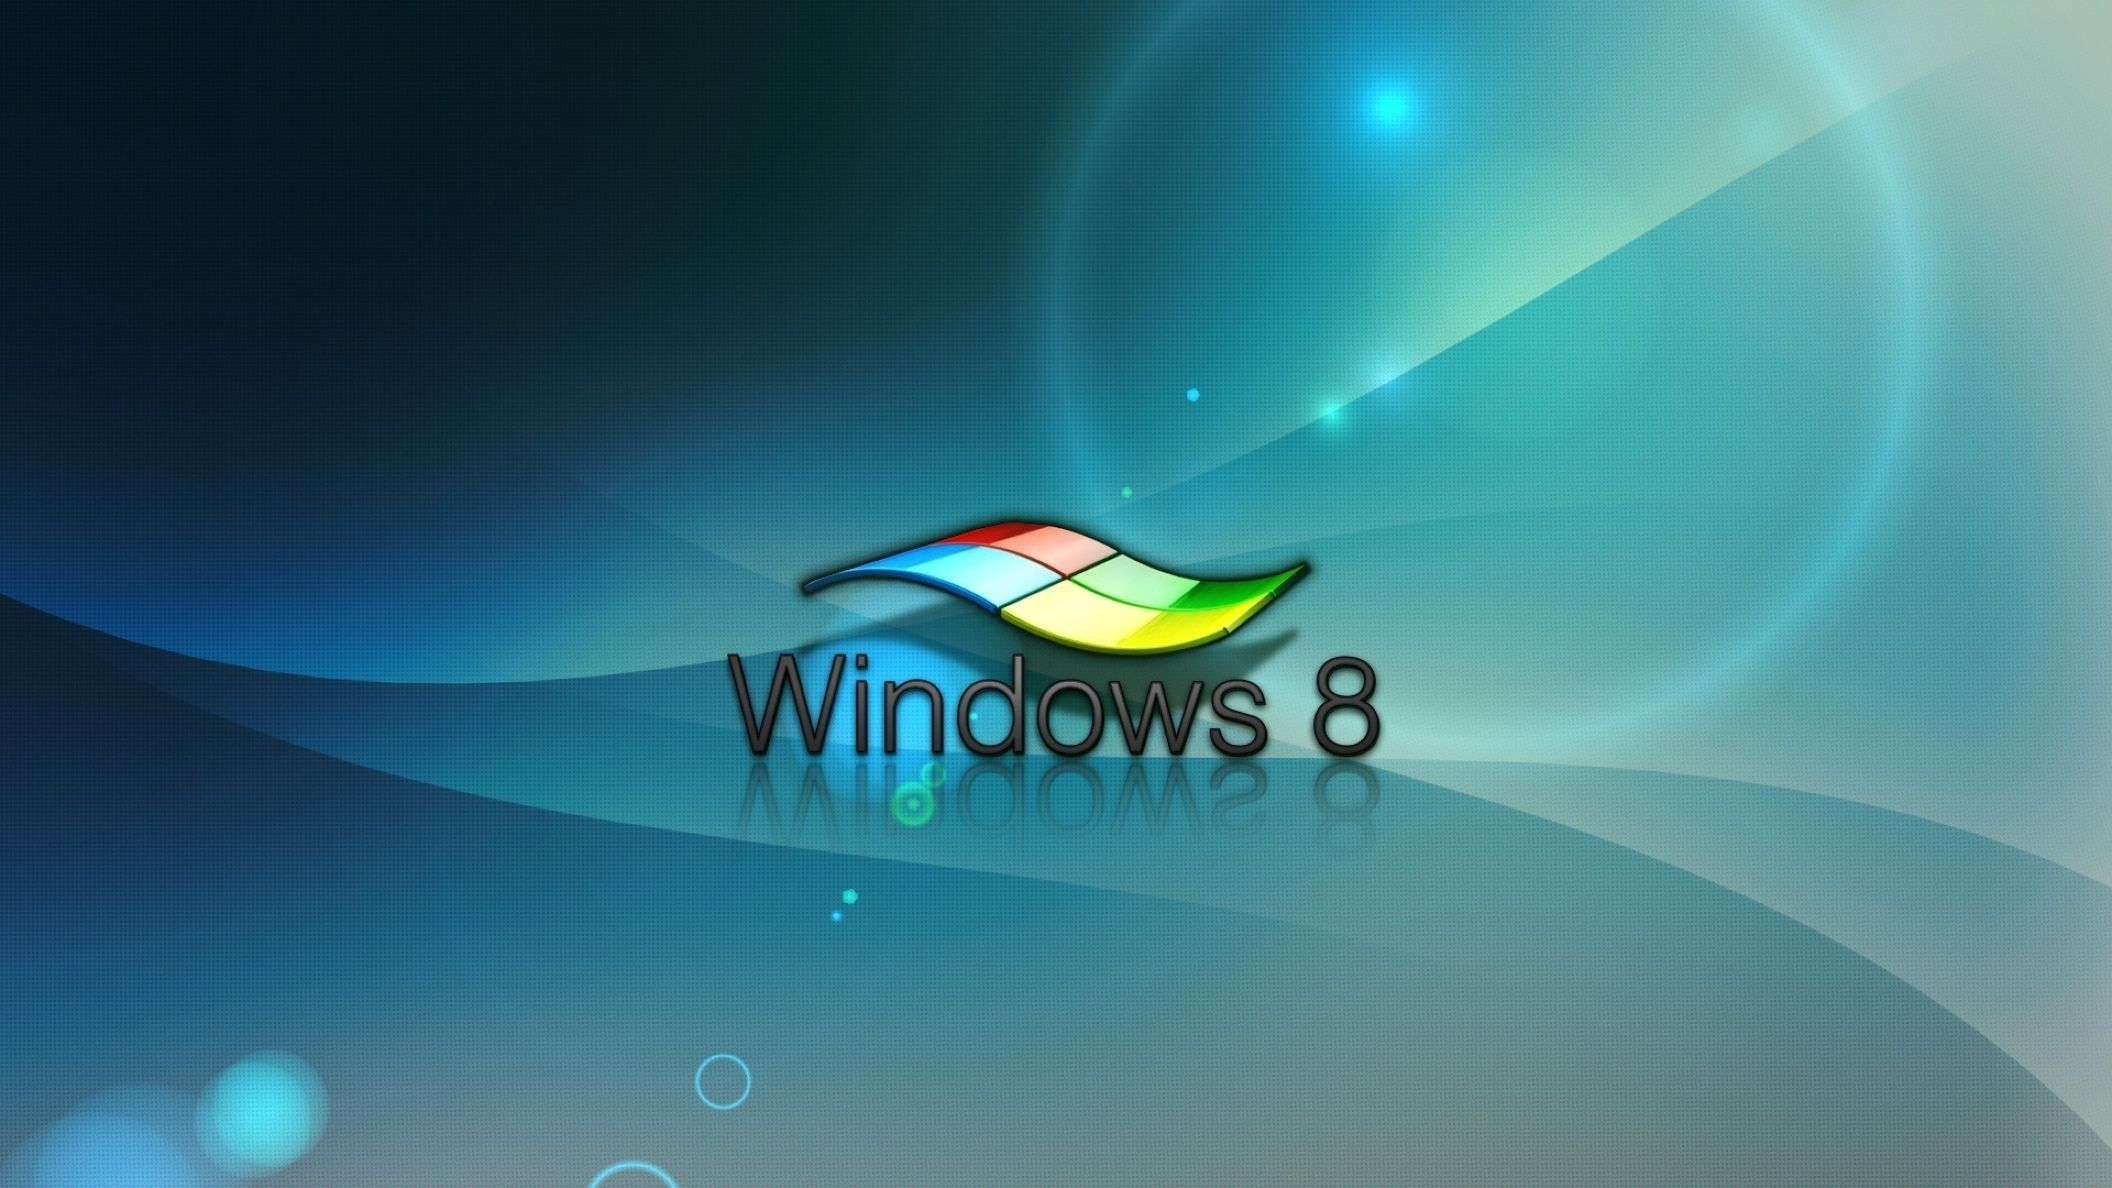 10 Most Popular Windows 8 Wallpaper Hd 3d For Desktop Full Hd 1920 1080 For Pc Desktop Windows Wallpaper Wallpaper Images Hd Background Hd Wallpaper